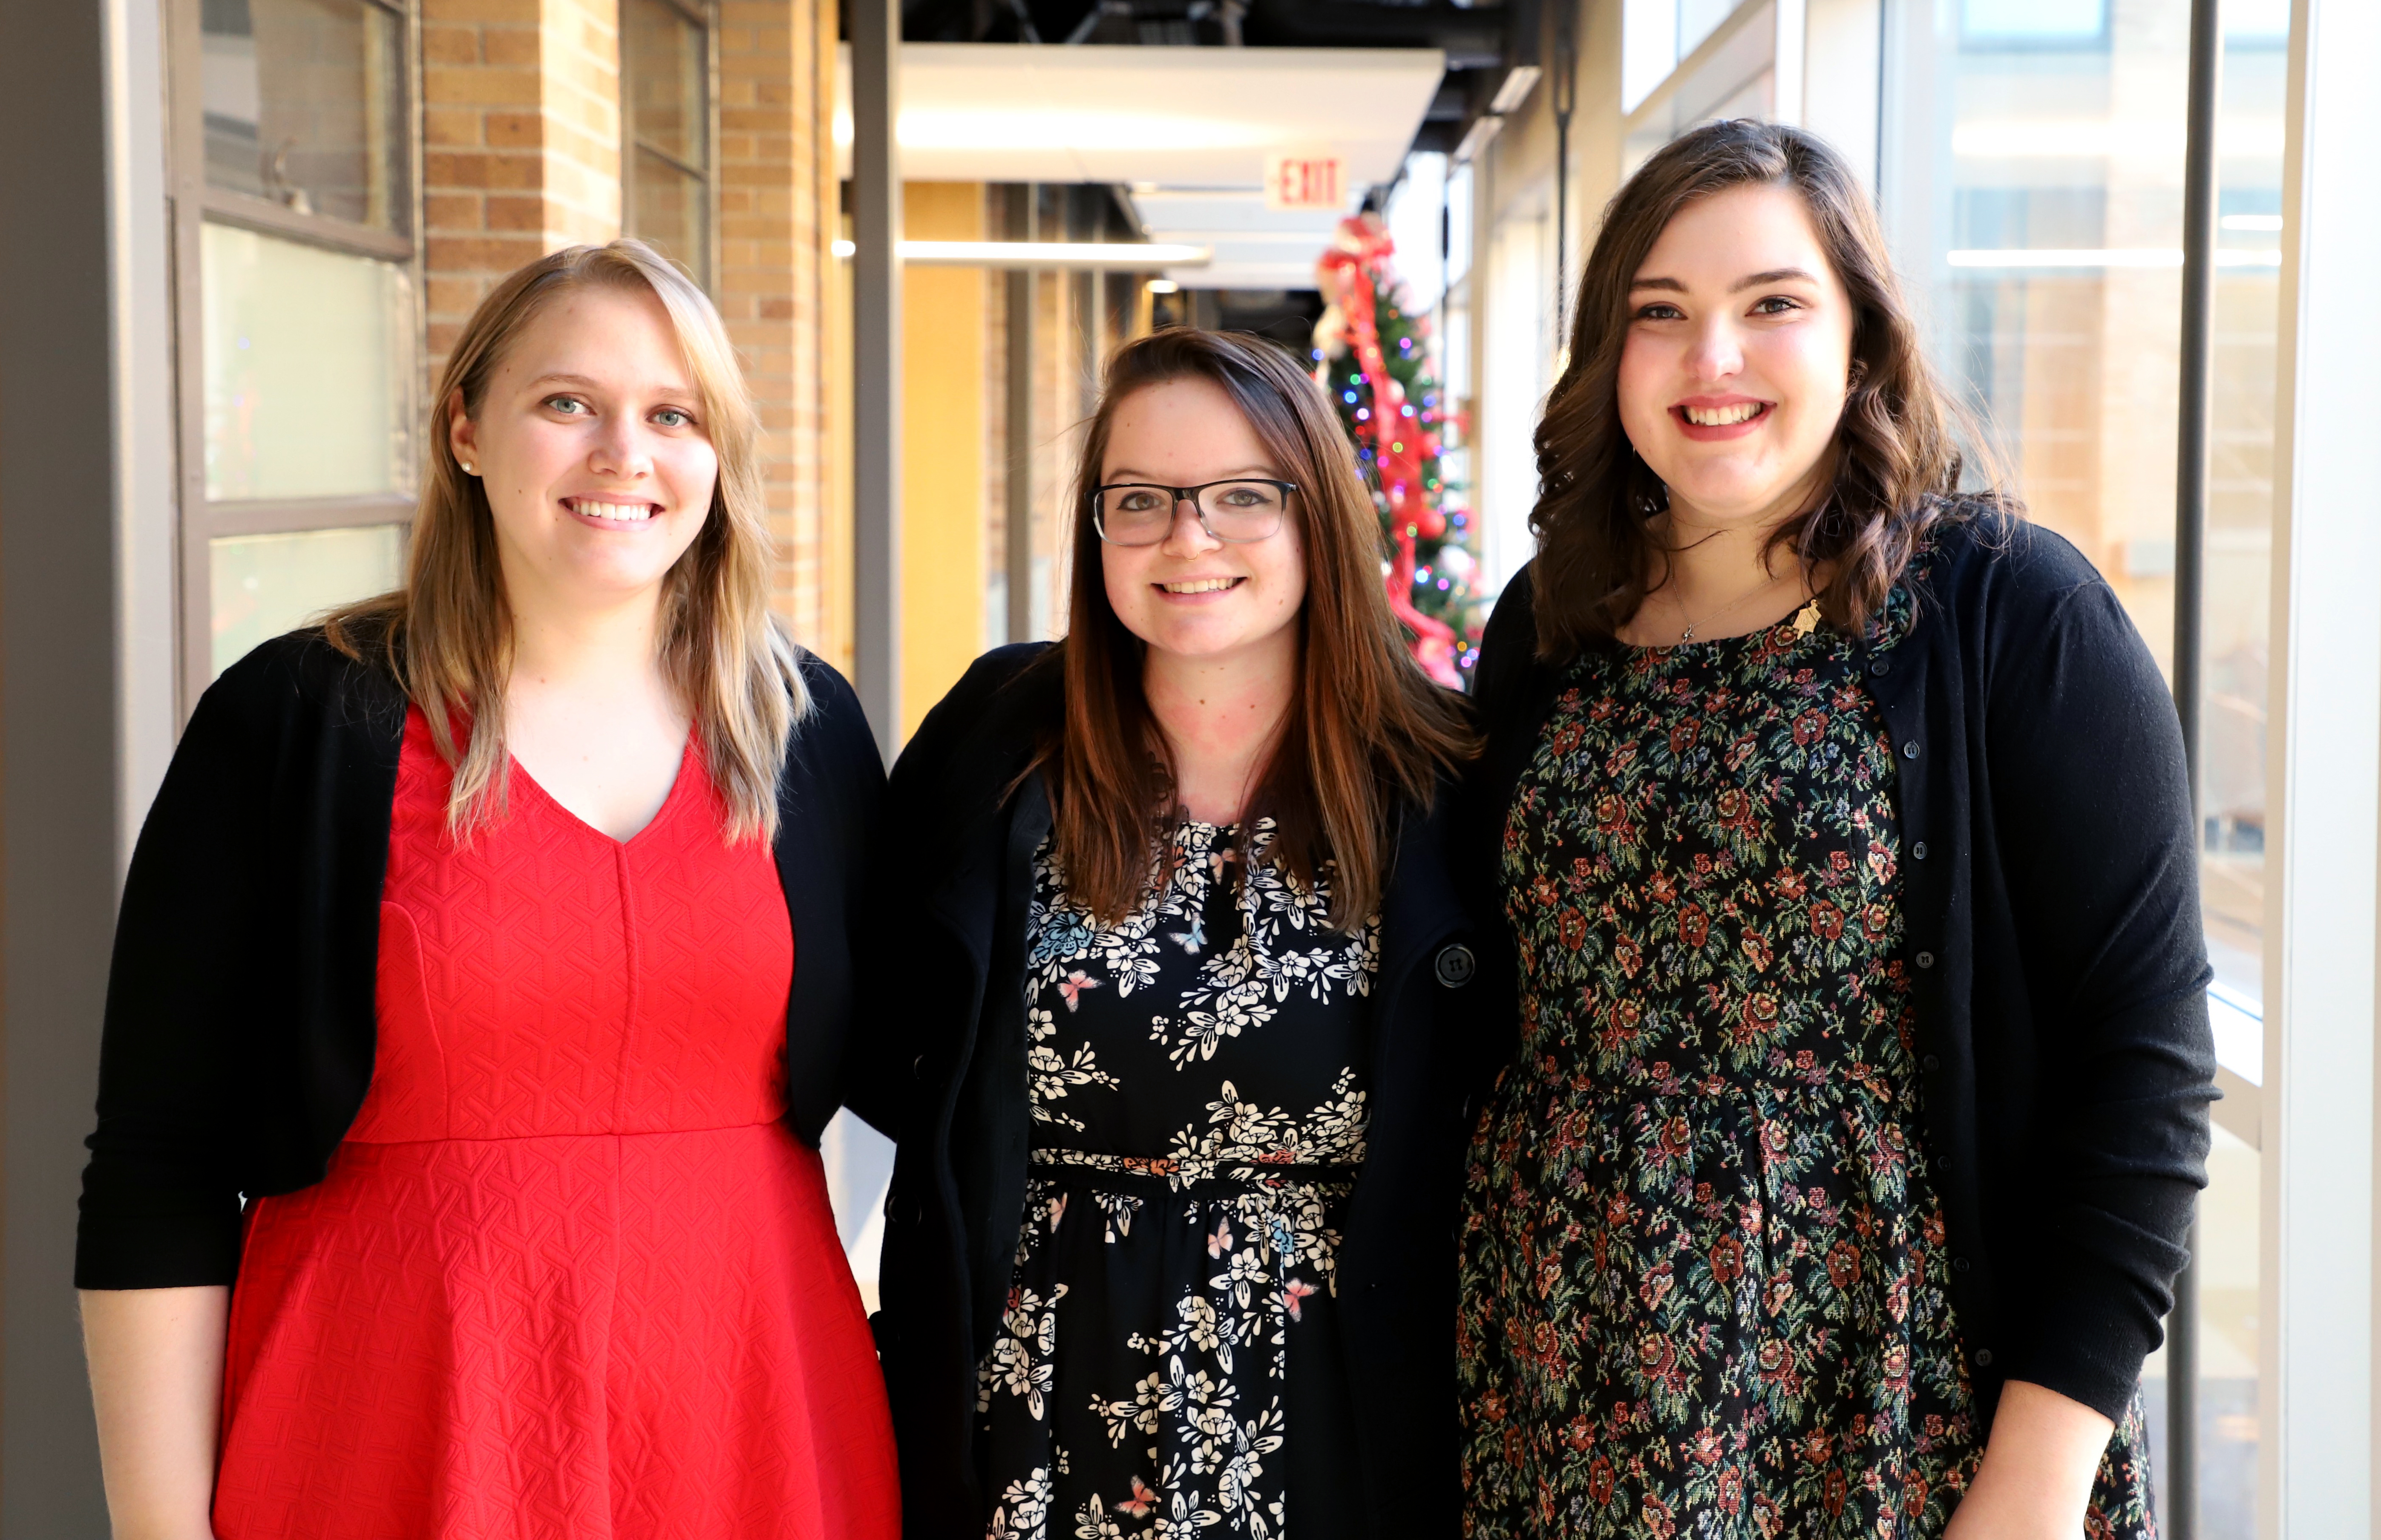 Callie Meyer, from left, Anna Yost and Elizabeth Lutz celebrate at the department undergraduate graduation reception with family, friends, faculty and staff.